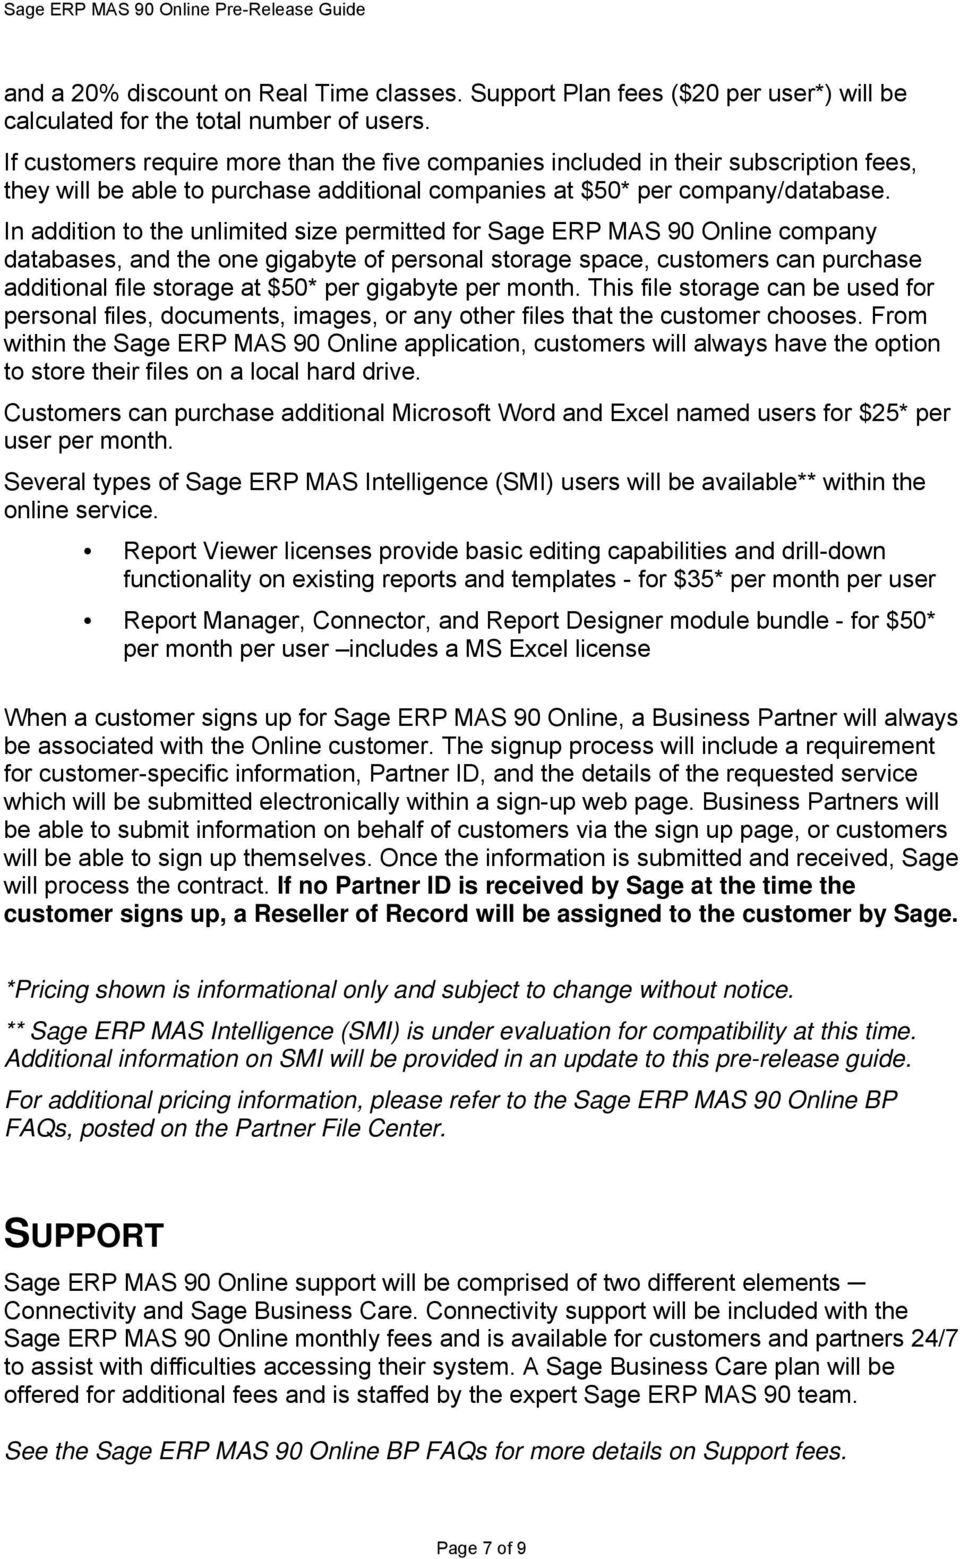 In addition to the unlimited size permitted for Sage ERP MAS 90 Online company databases, and the one gigabyte of personal storage space, customers can purchase additional file storage at $50* per